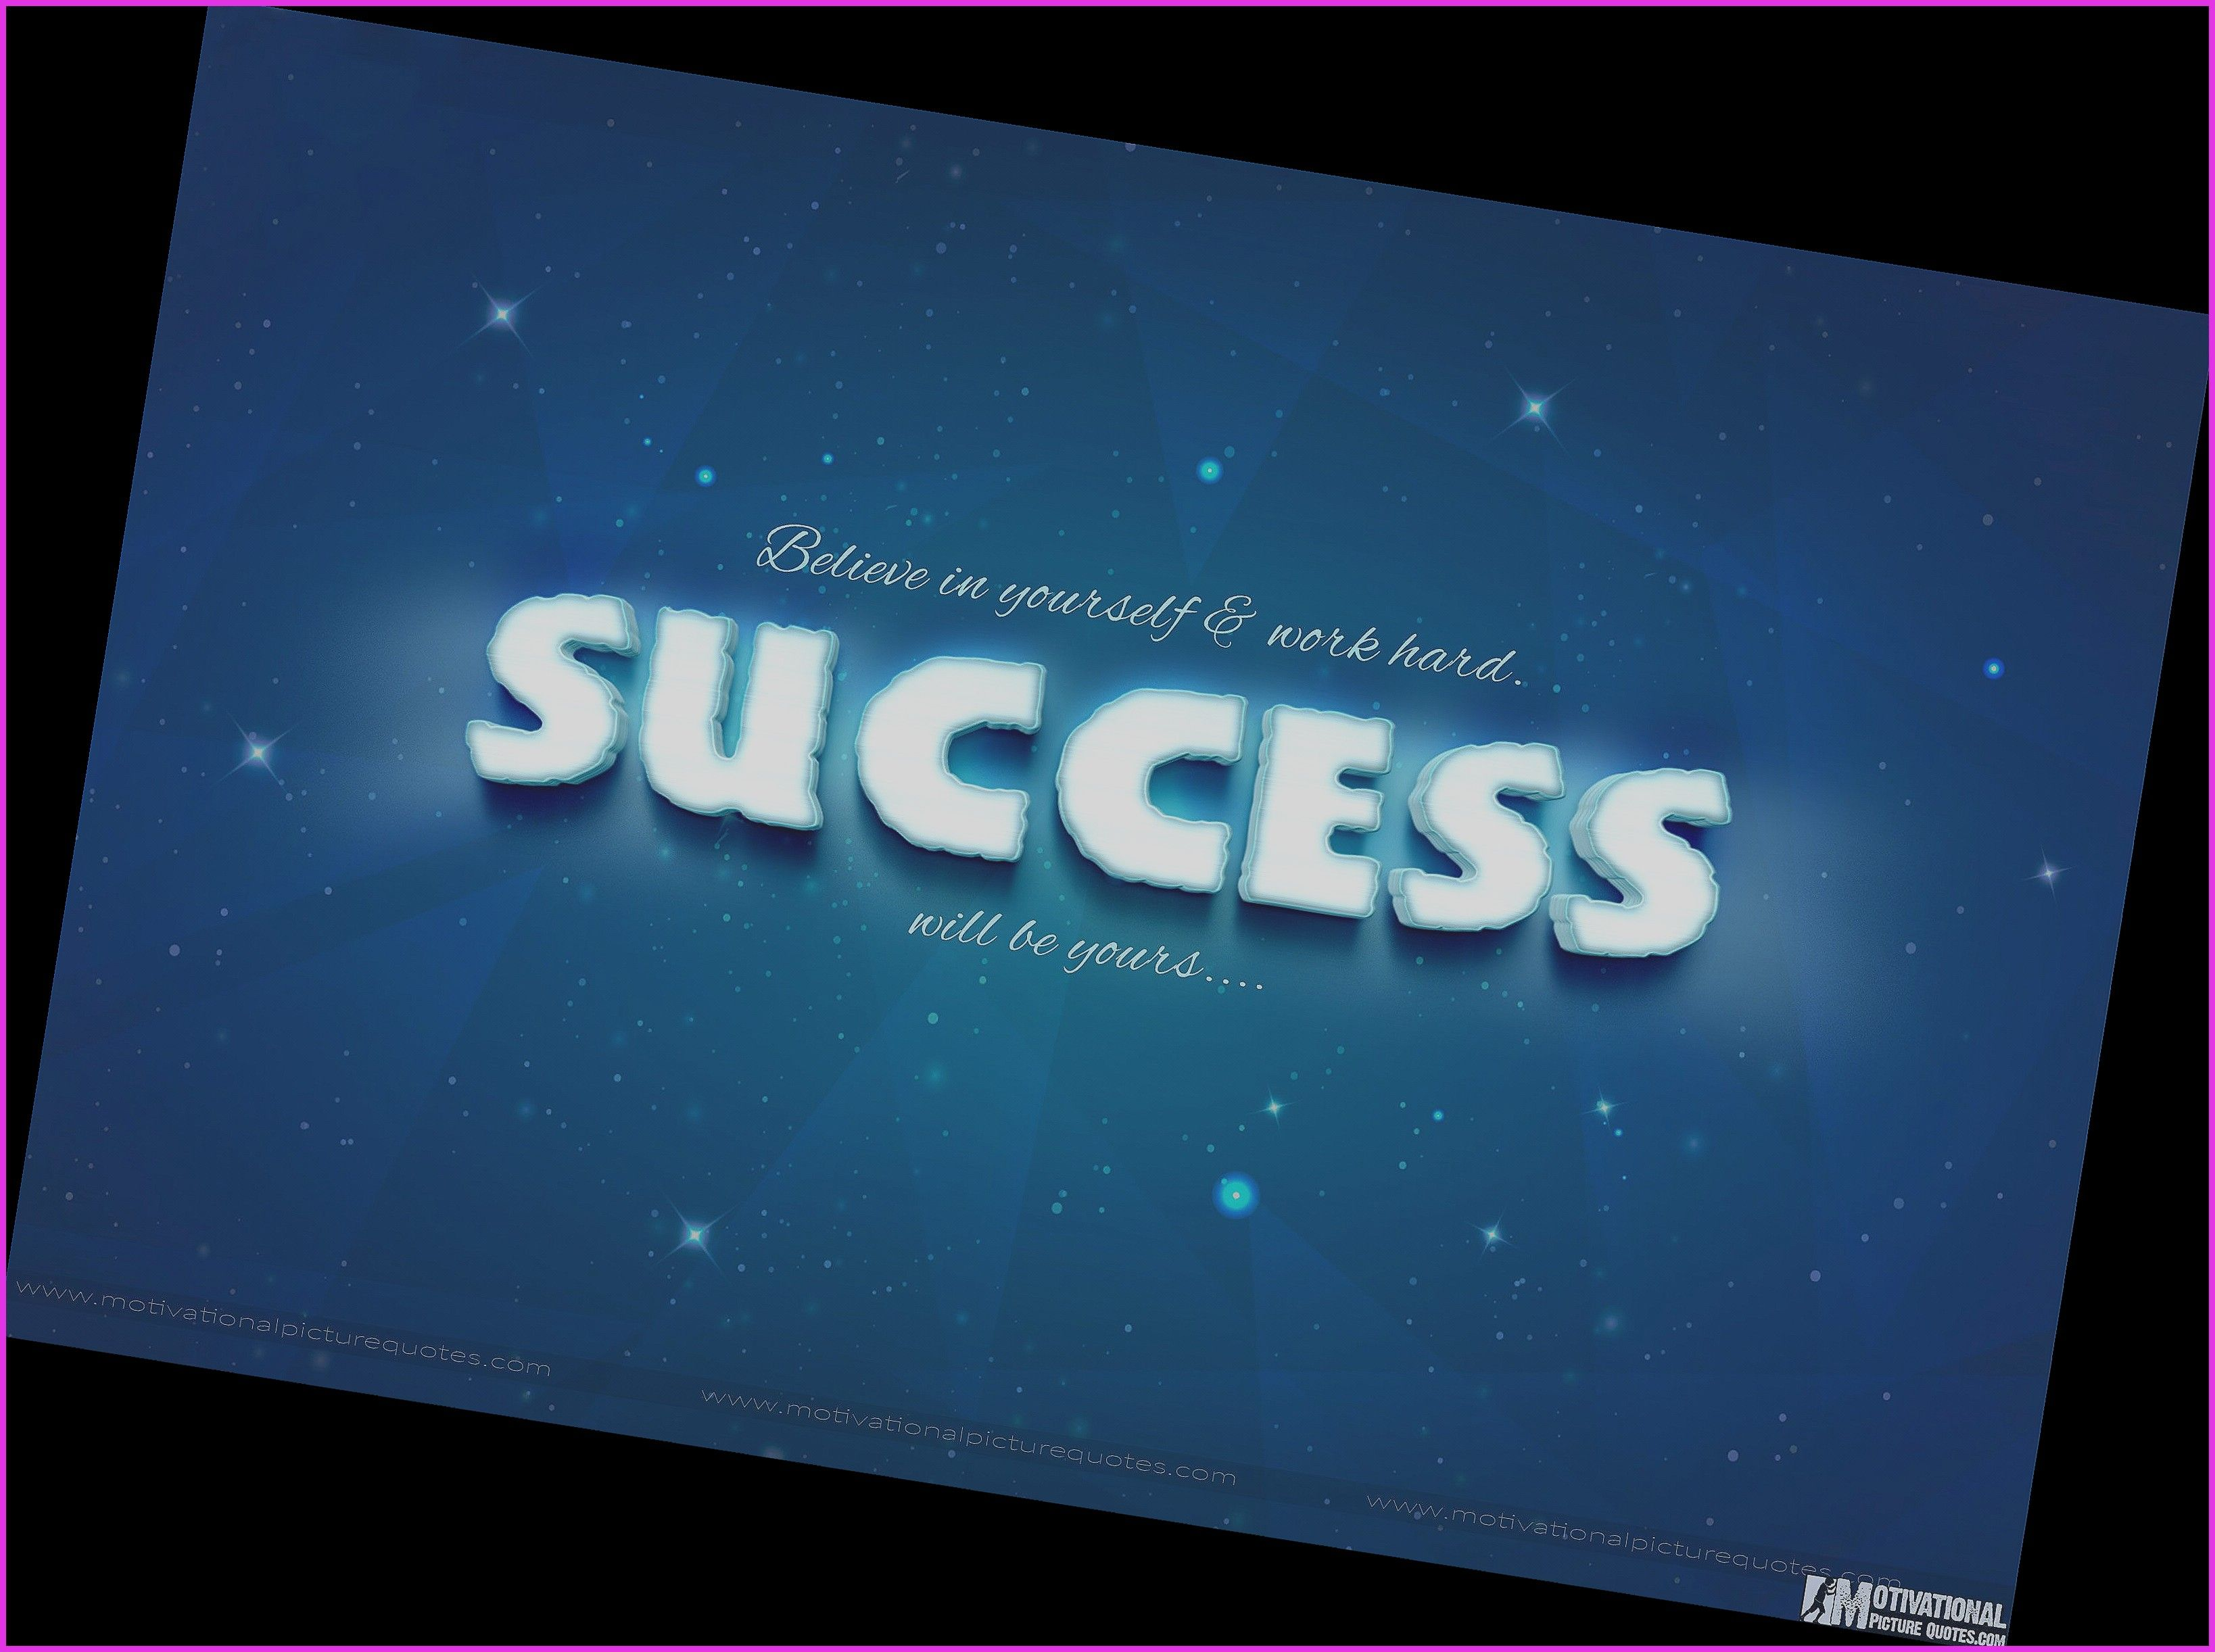 Free Download Best Success Wallpaper Hd For Your Desktop Laptop Or On Isaidyeshub Com Motivational Quotes Motivational Quotes Wallpaper Wallpaper Quotes